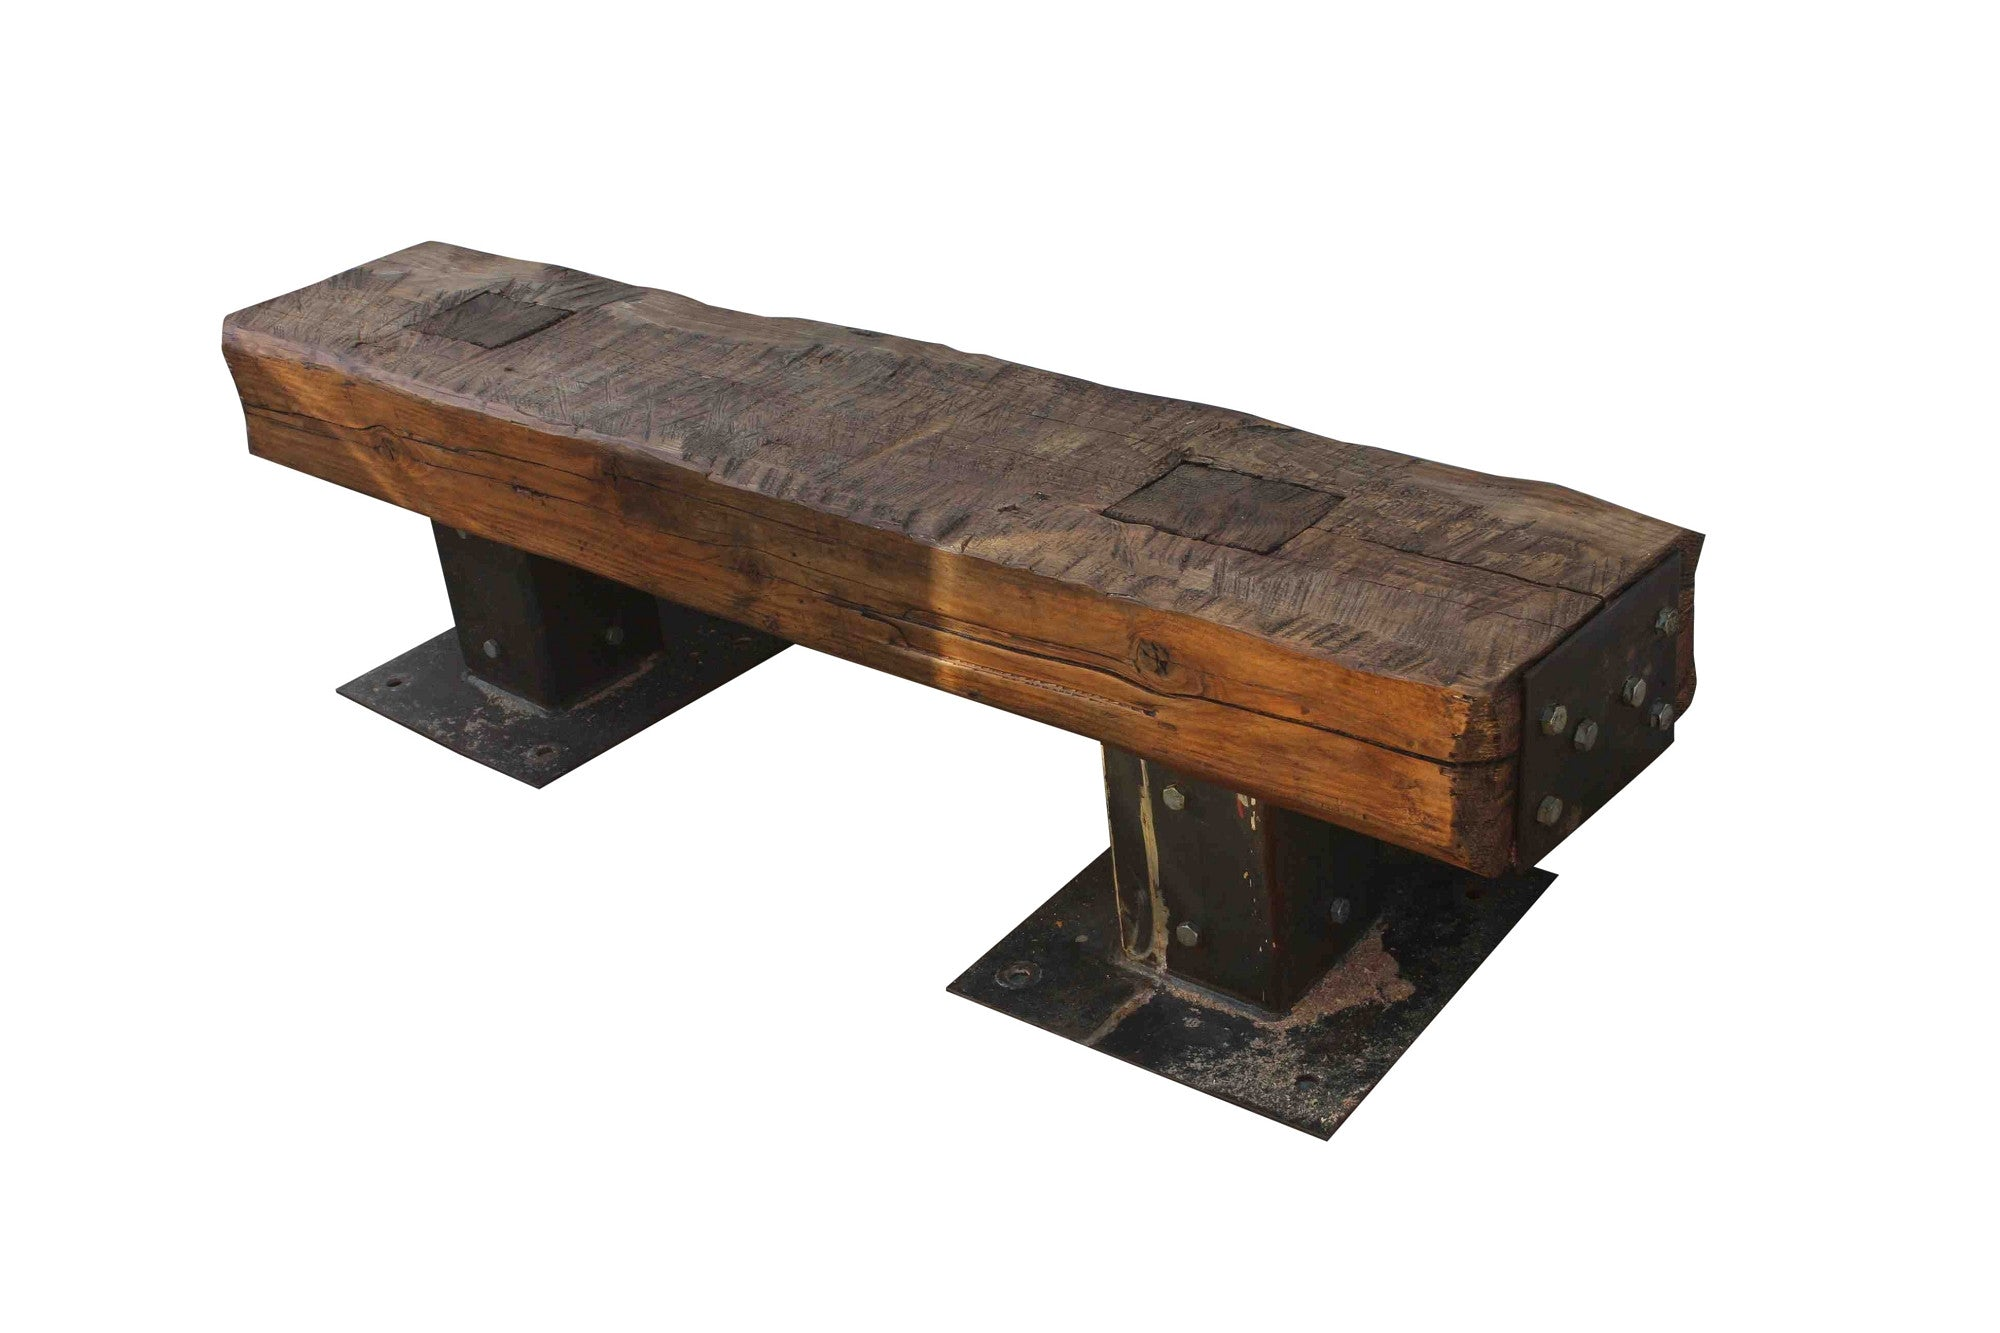 Rustic Wood Outdoor Bench – Mortise & Tenon